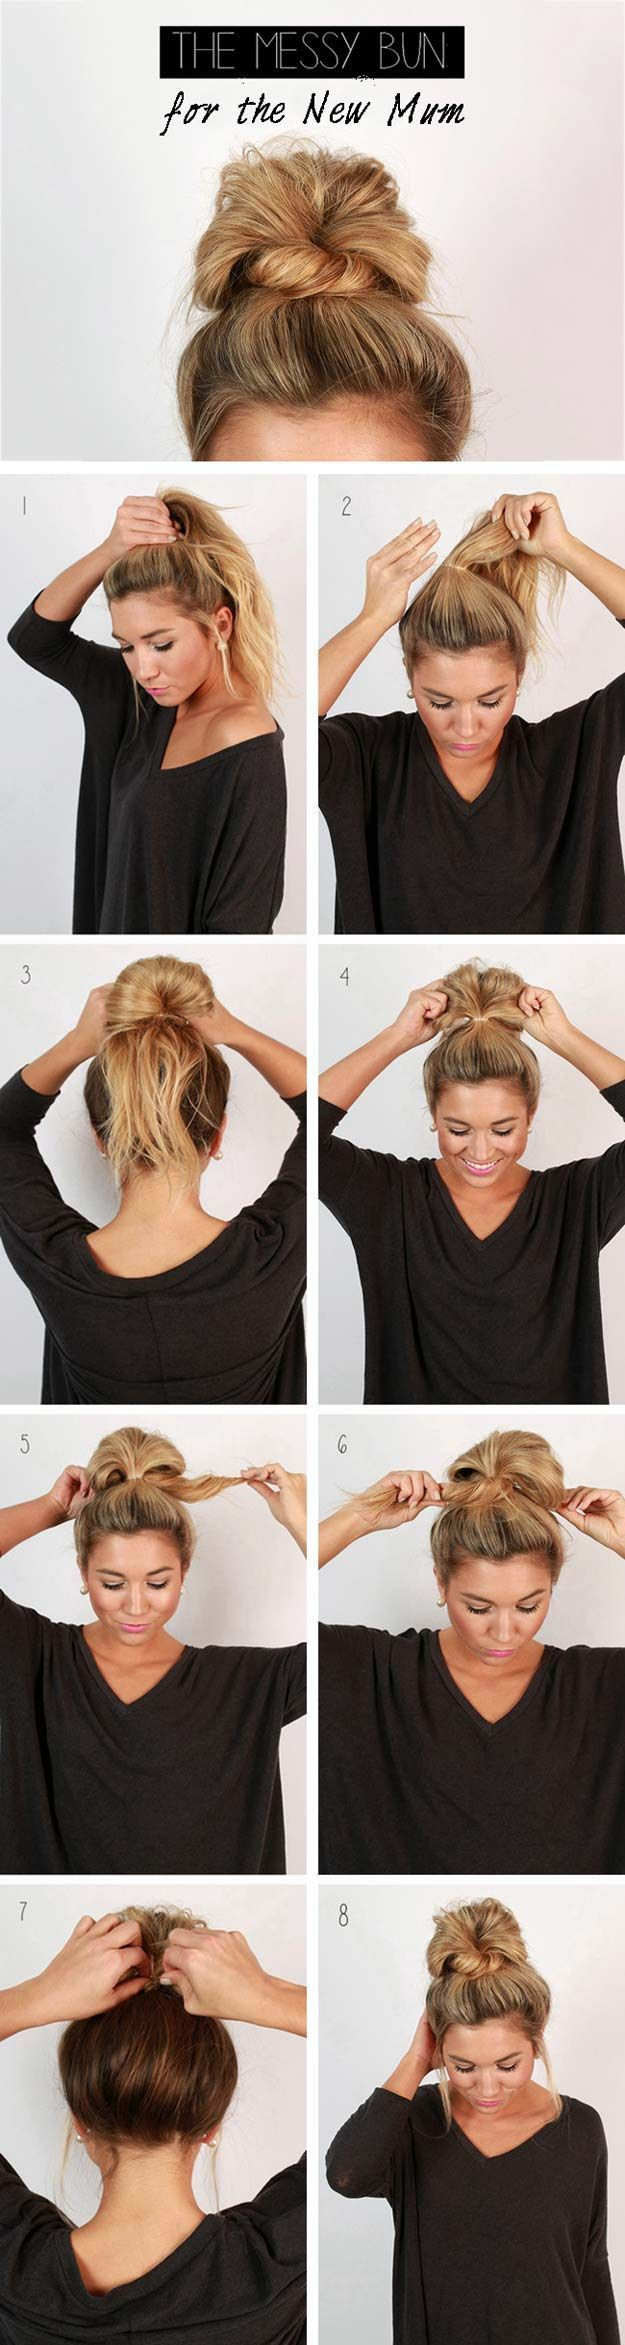 Best 25+ School picture hairstyles ideas on Pinterest ...